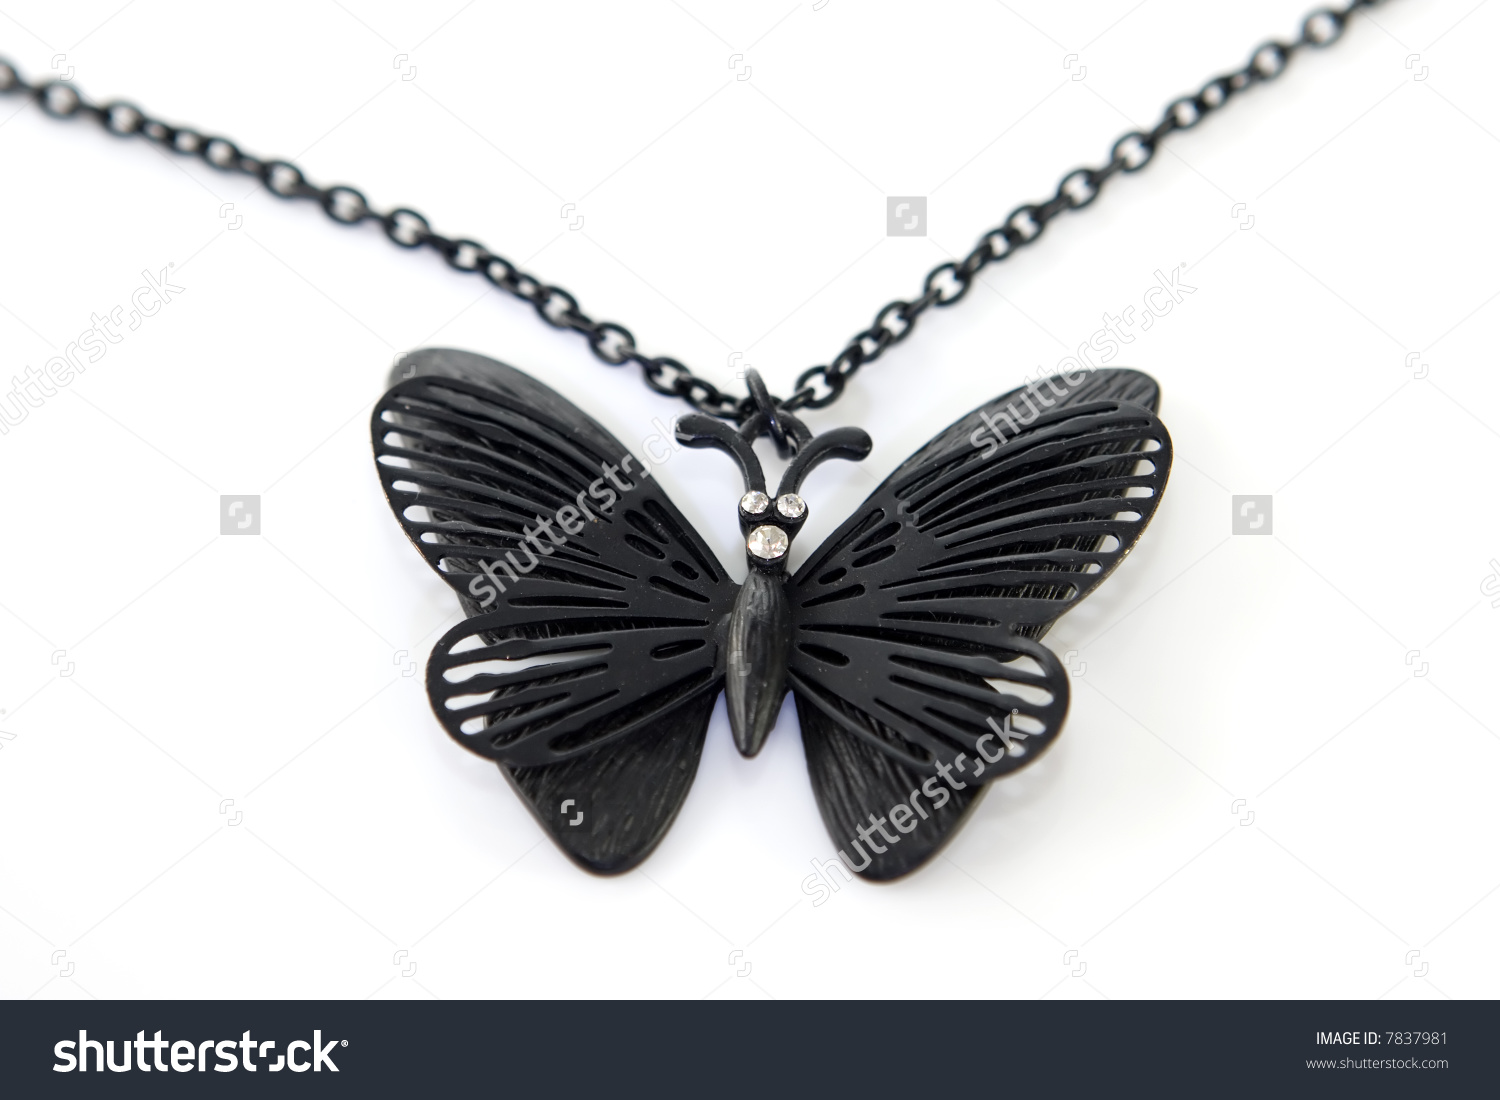 Delicate Black Butterfly Necklace Diamond Eyes Stock Photo 7837981.